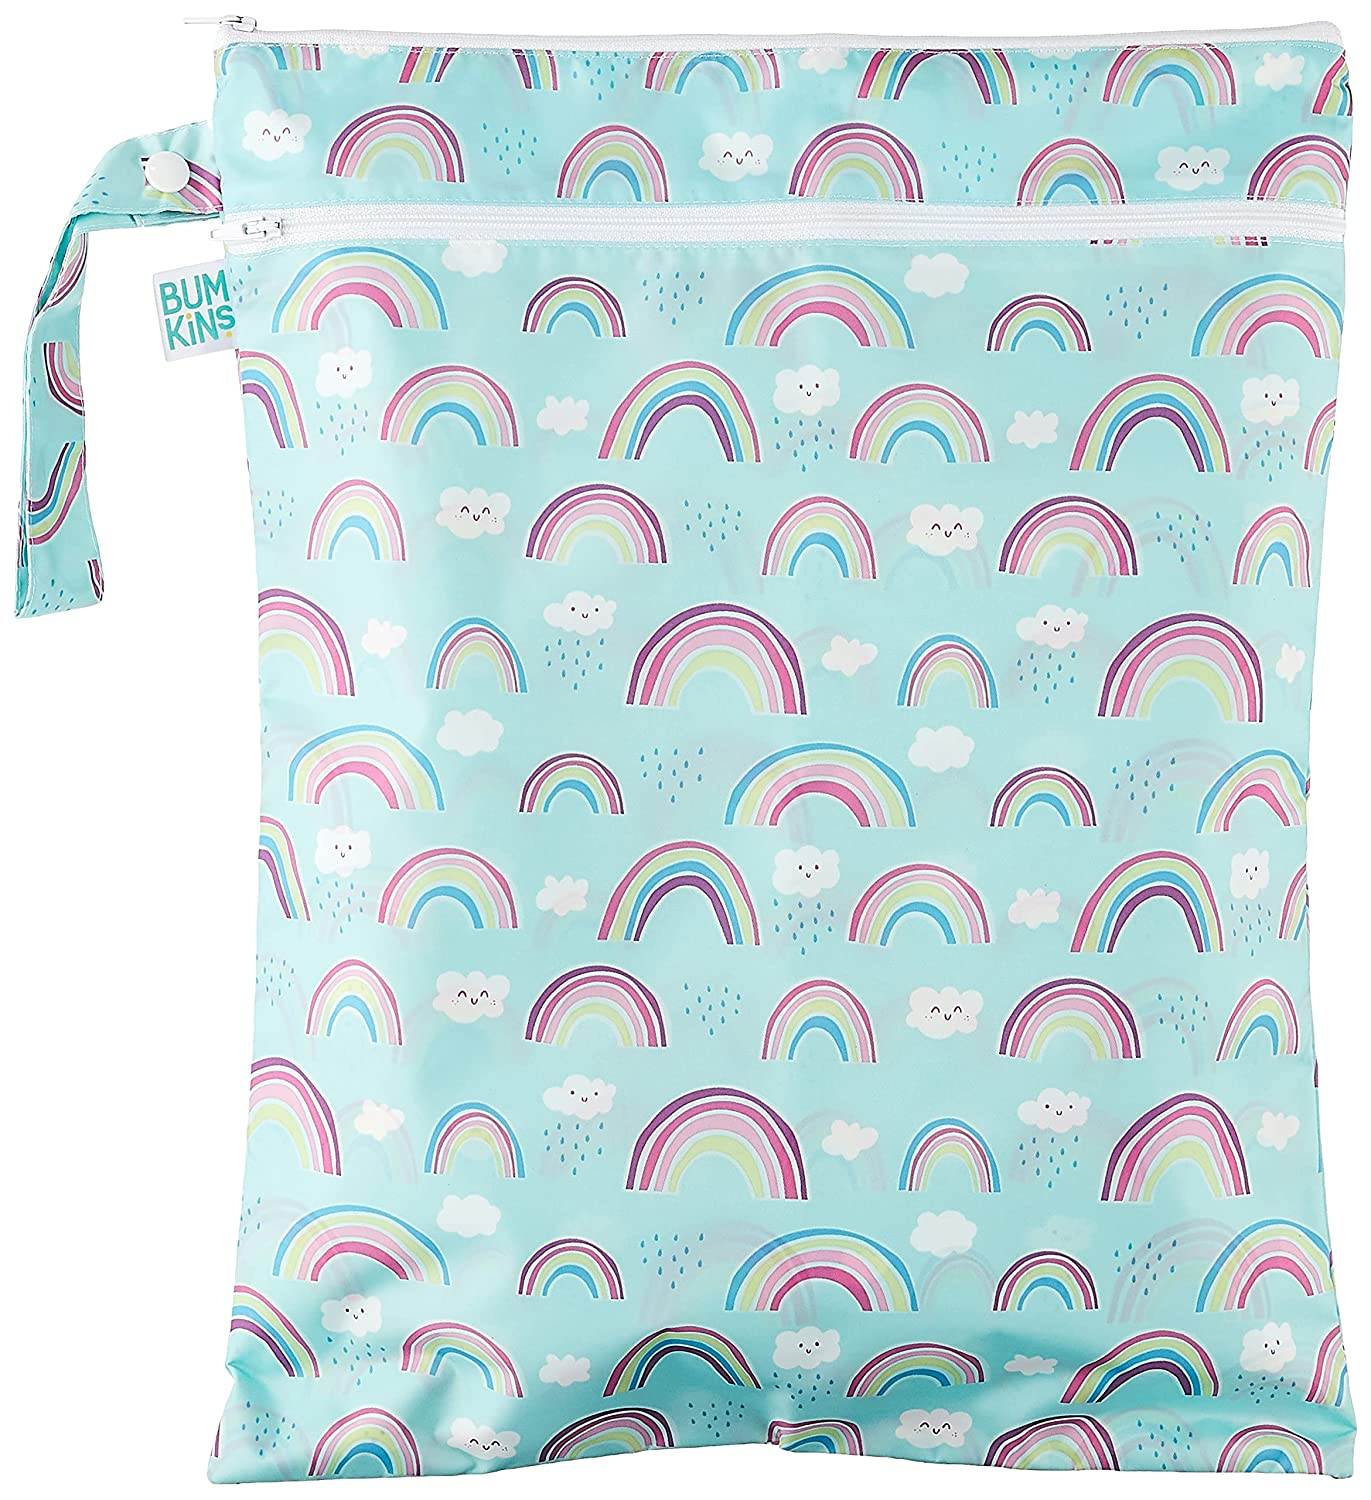 Bumkins Waterproof Wet Bag/Dry Bag, Washable, Reusable for Travel, Beach, Pool, Stroller, Diapers, Dirty Gym Clothes, Wet Swimsuits, Toiletries, 12 x 16 – Rainbows